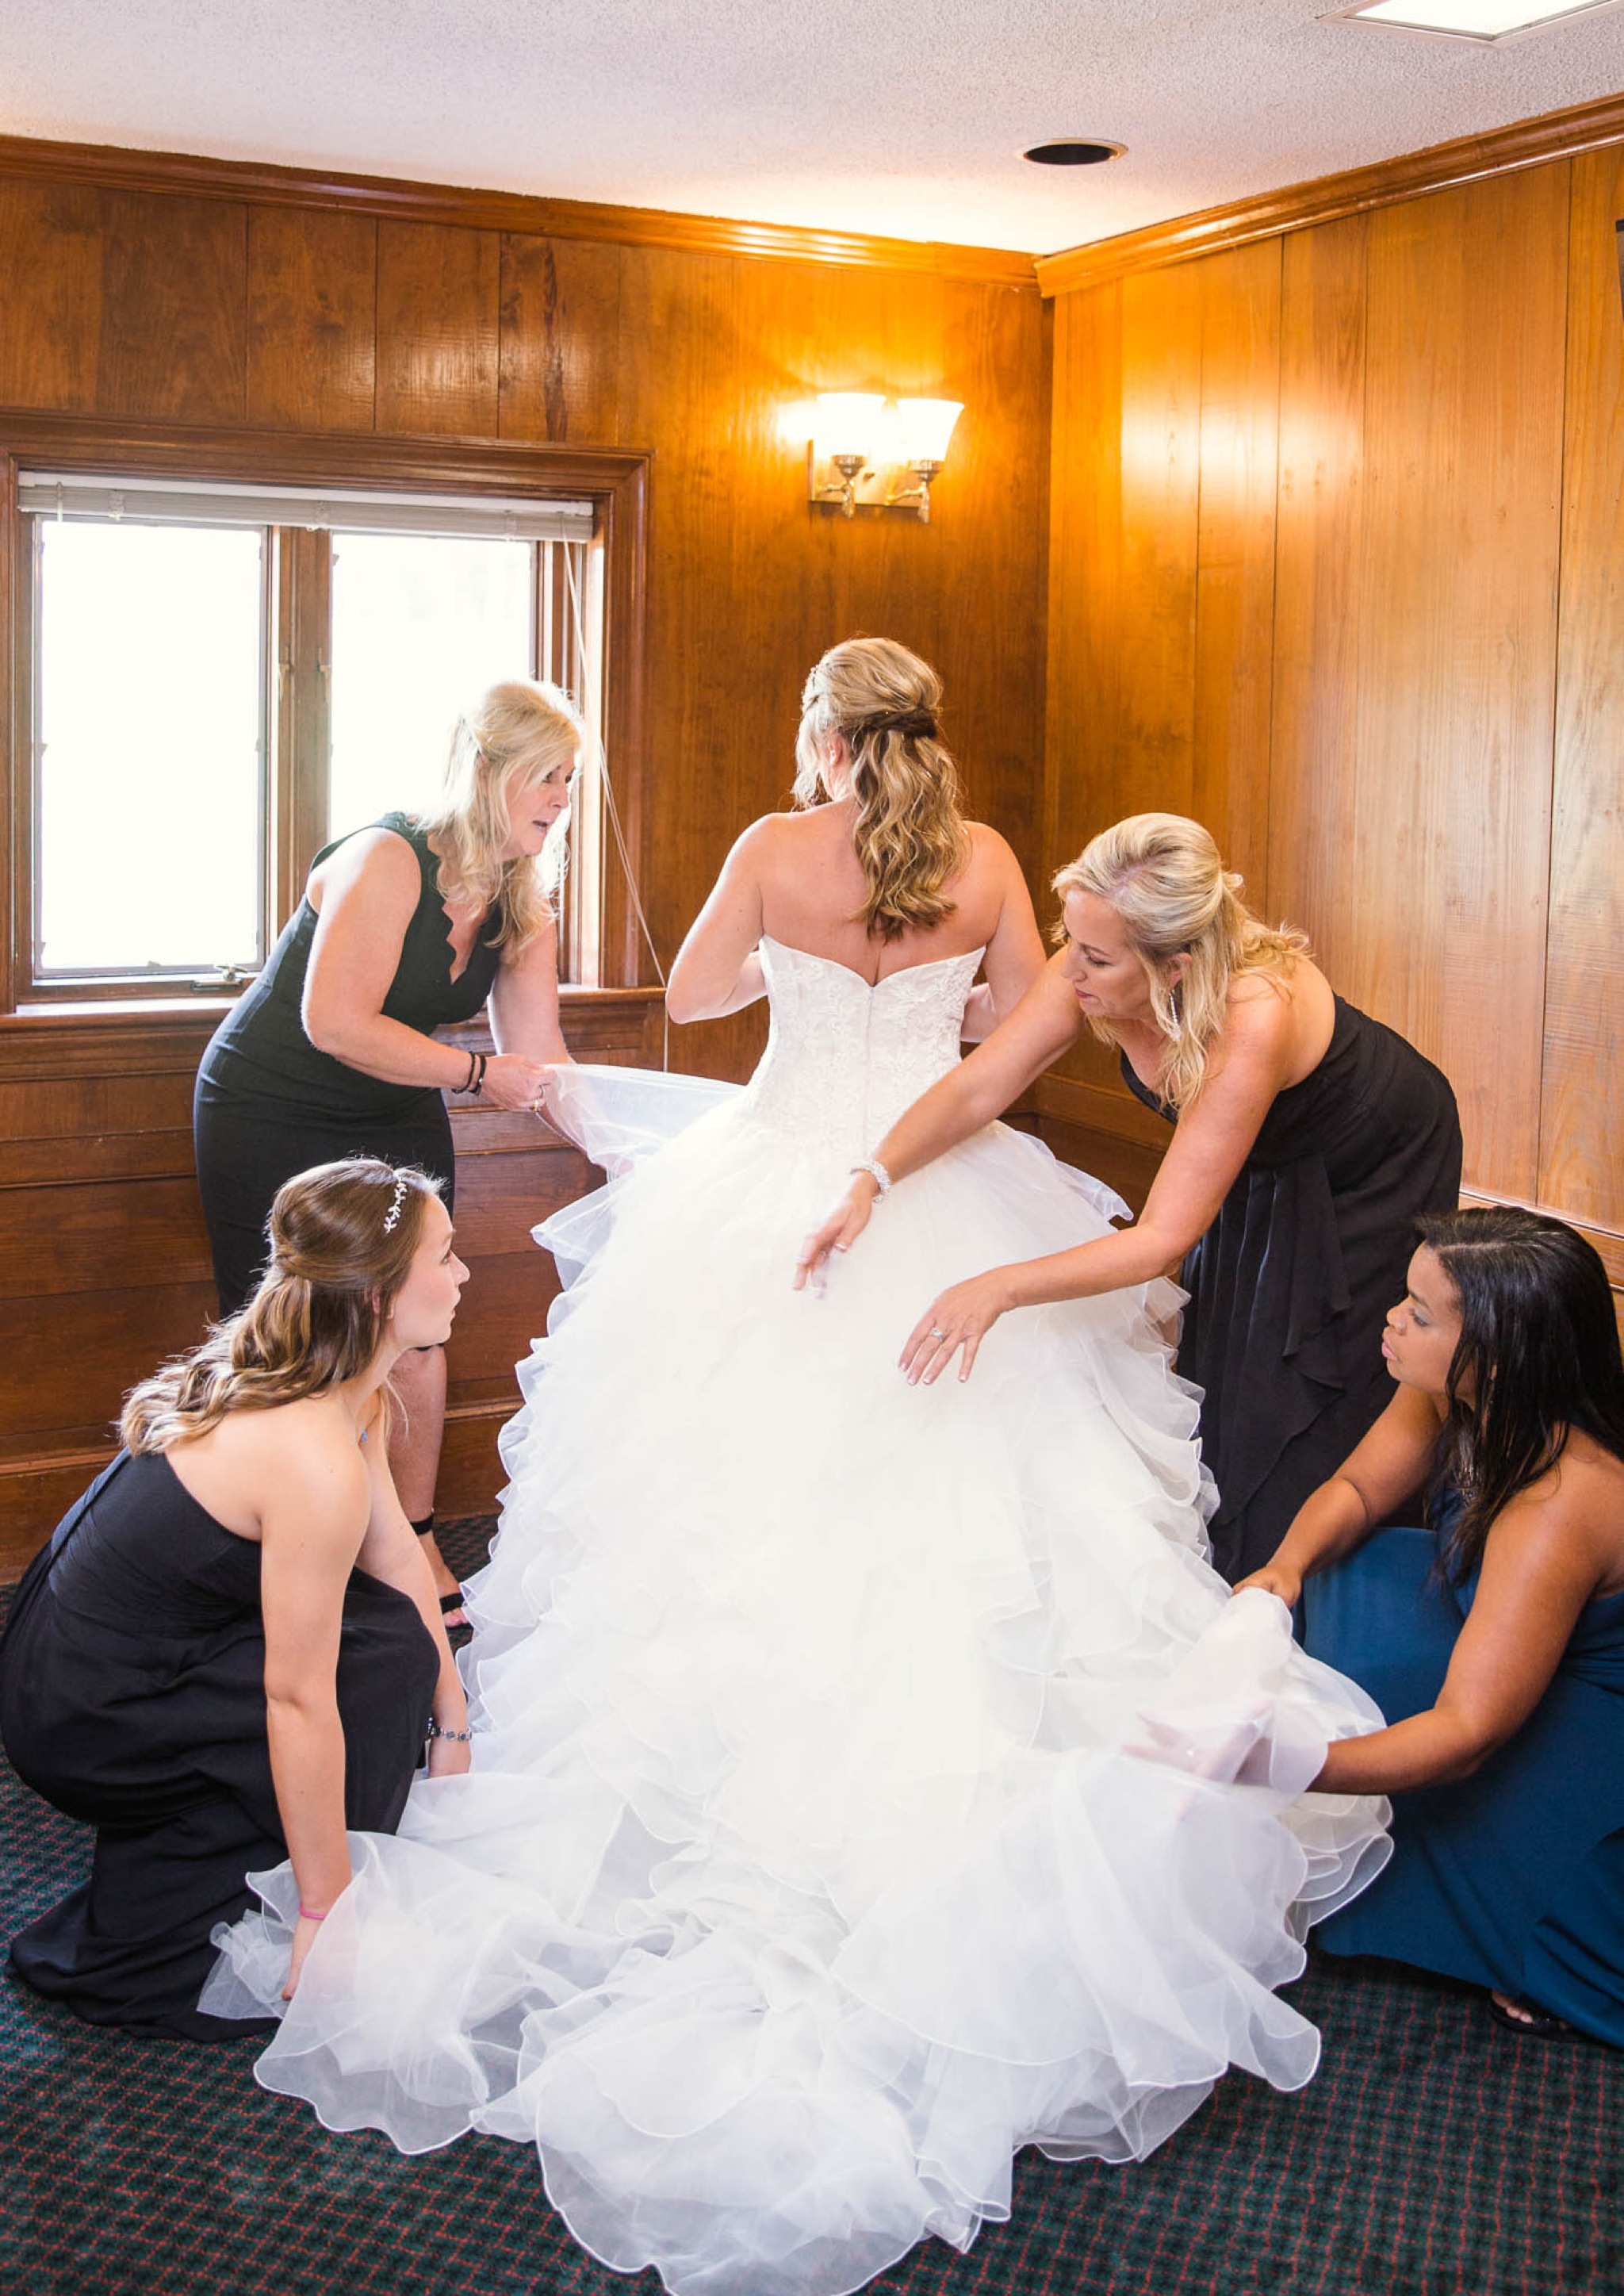 Bridesmaids fluffing the brides ball gown wedding dress - Dona + Doug - MacGregor Downs Country Club in Cary, NC - Raleigh Wedding Photographer